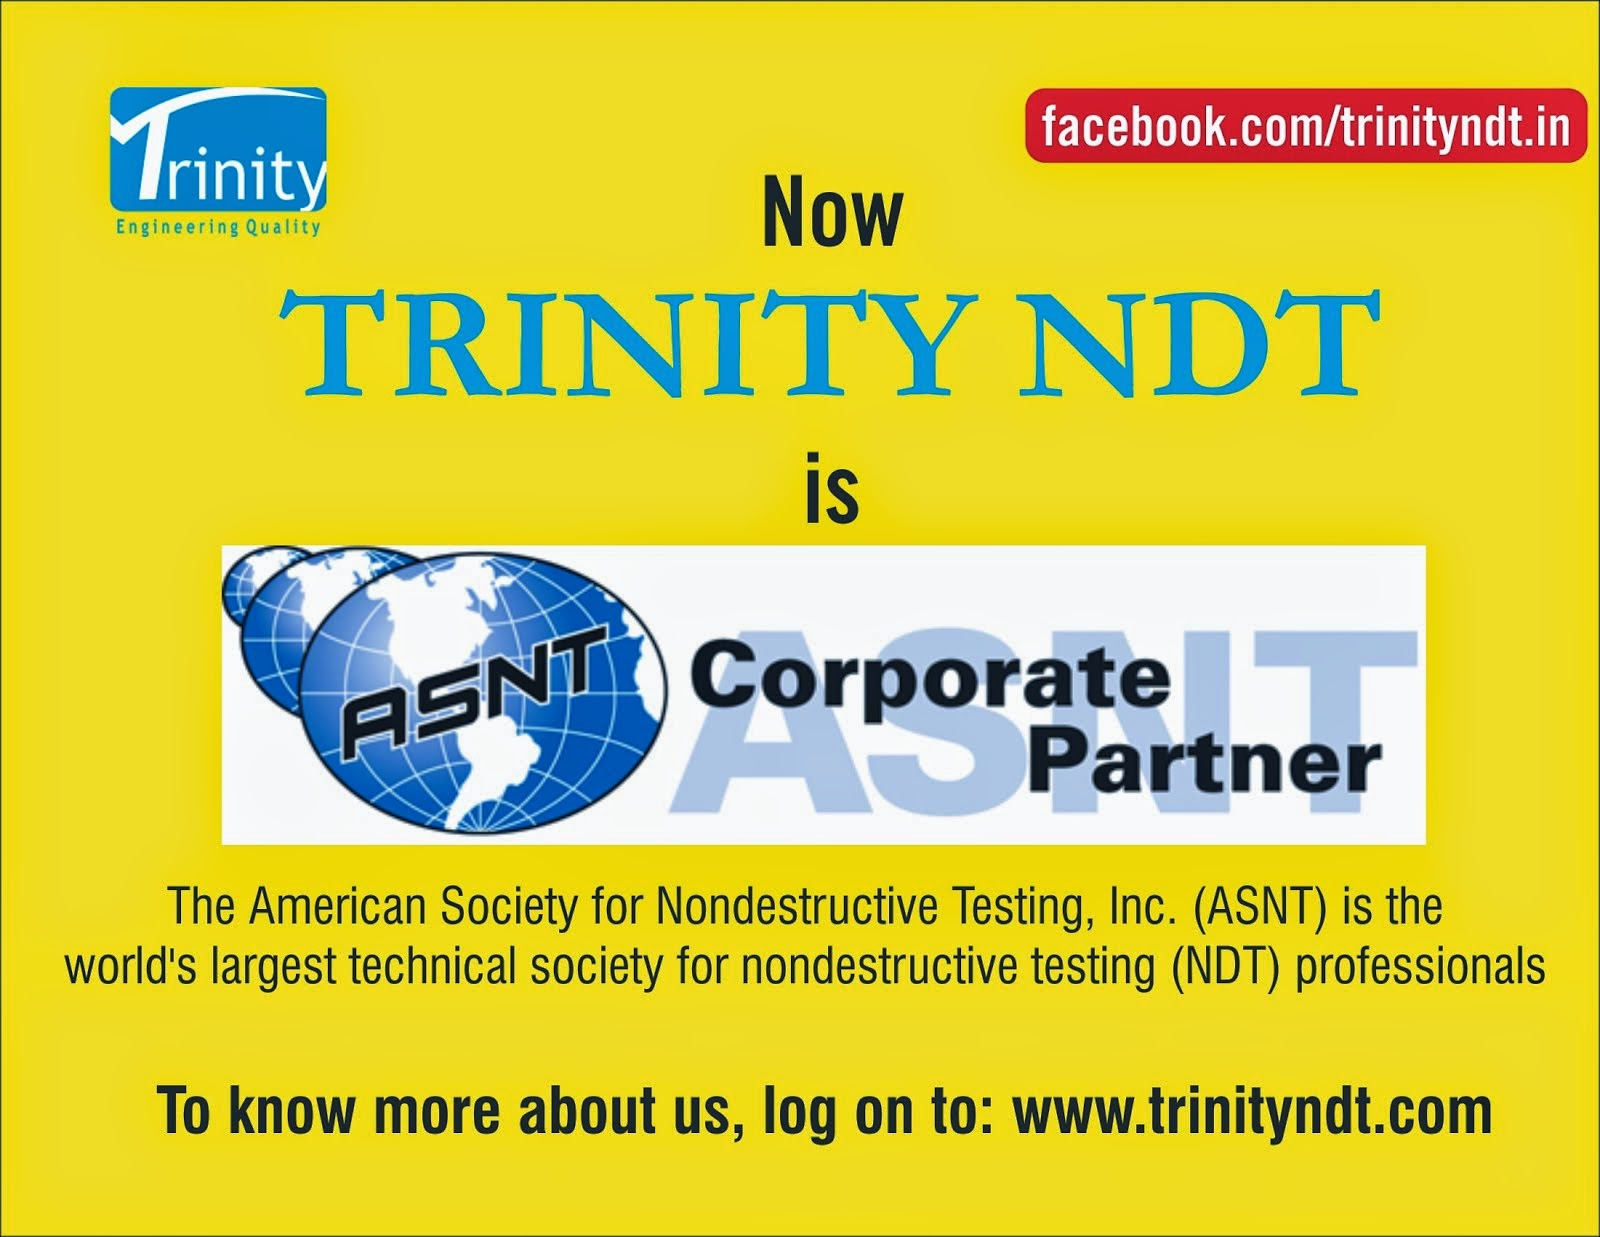 ASNT - The American Society for Nondestructive testing Corporate Partner